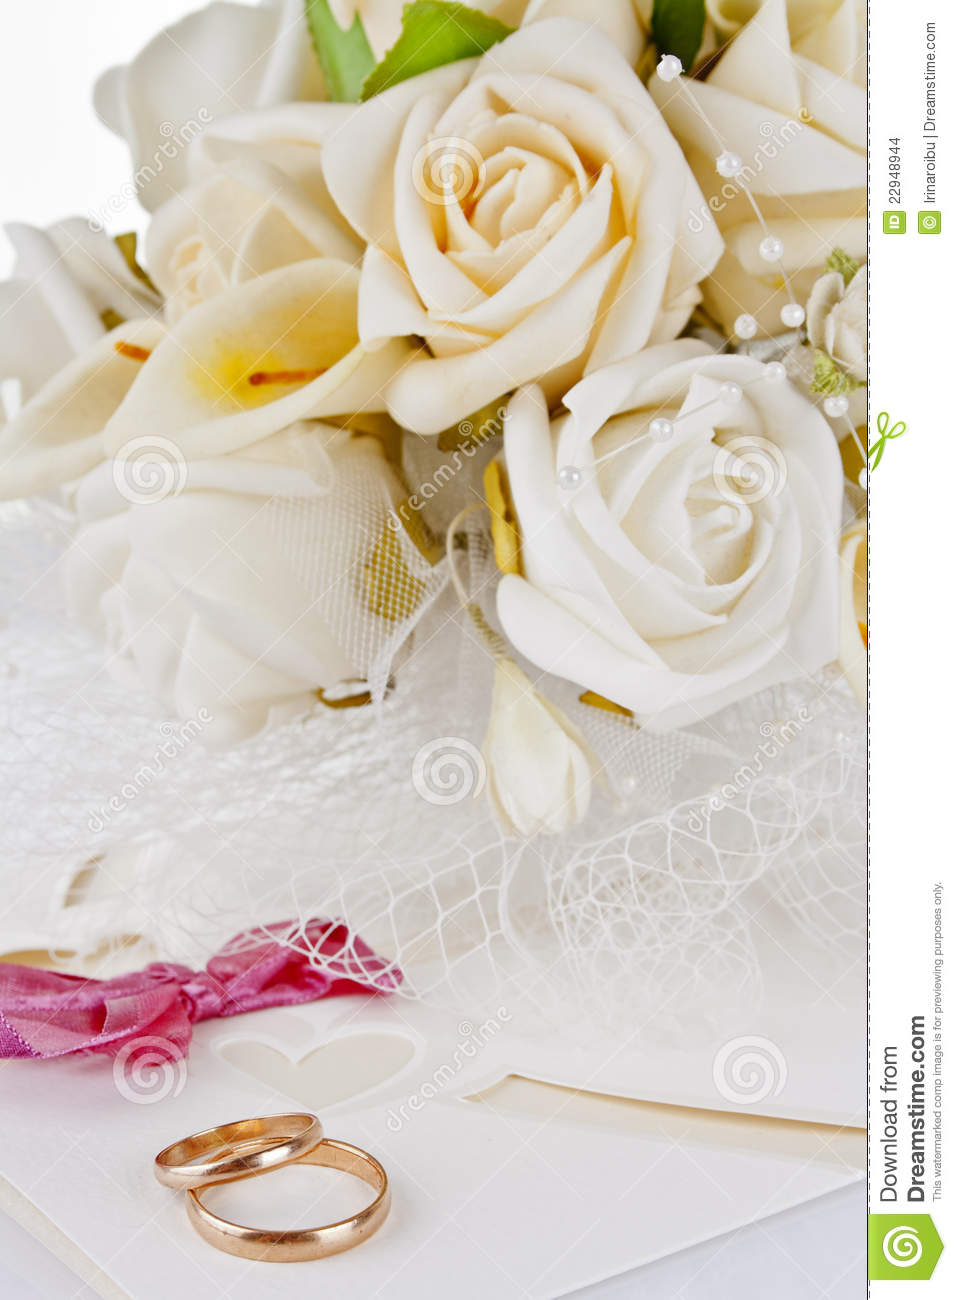 Wedding Bouquet And Rings For Valentine 39 S Day Stock Images Image